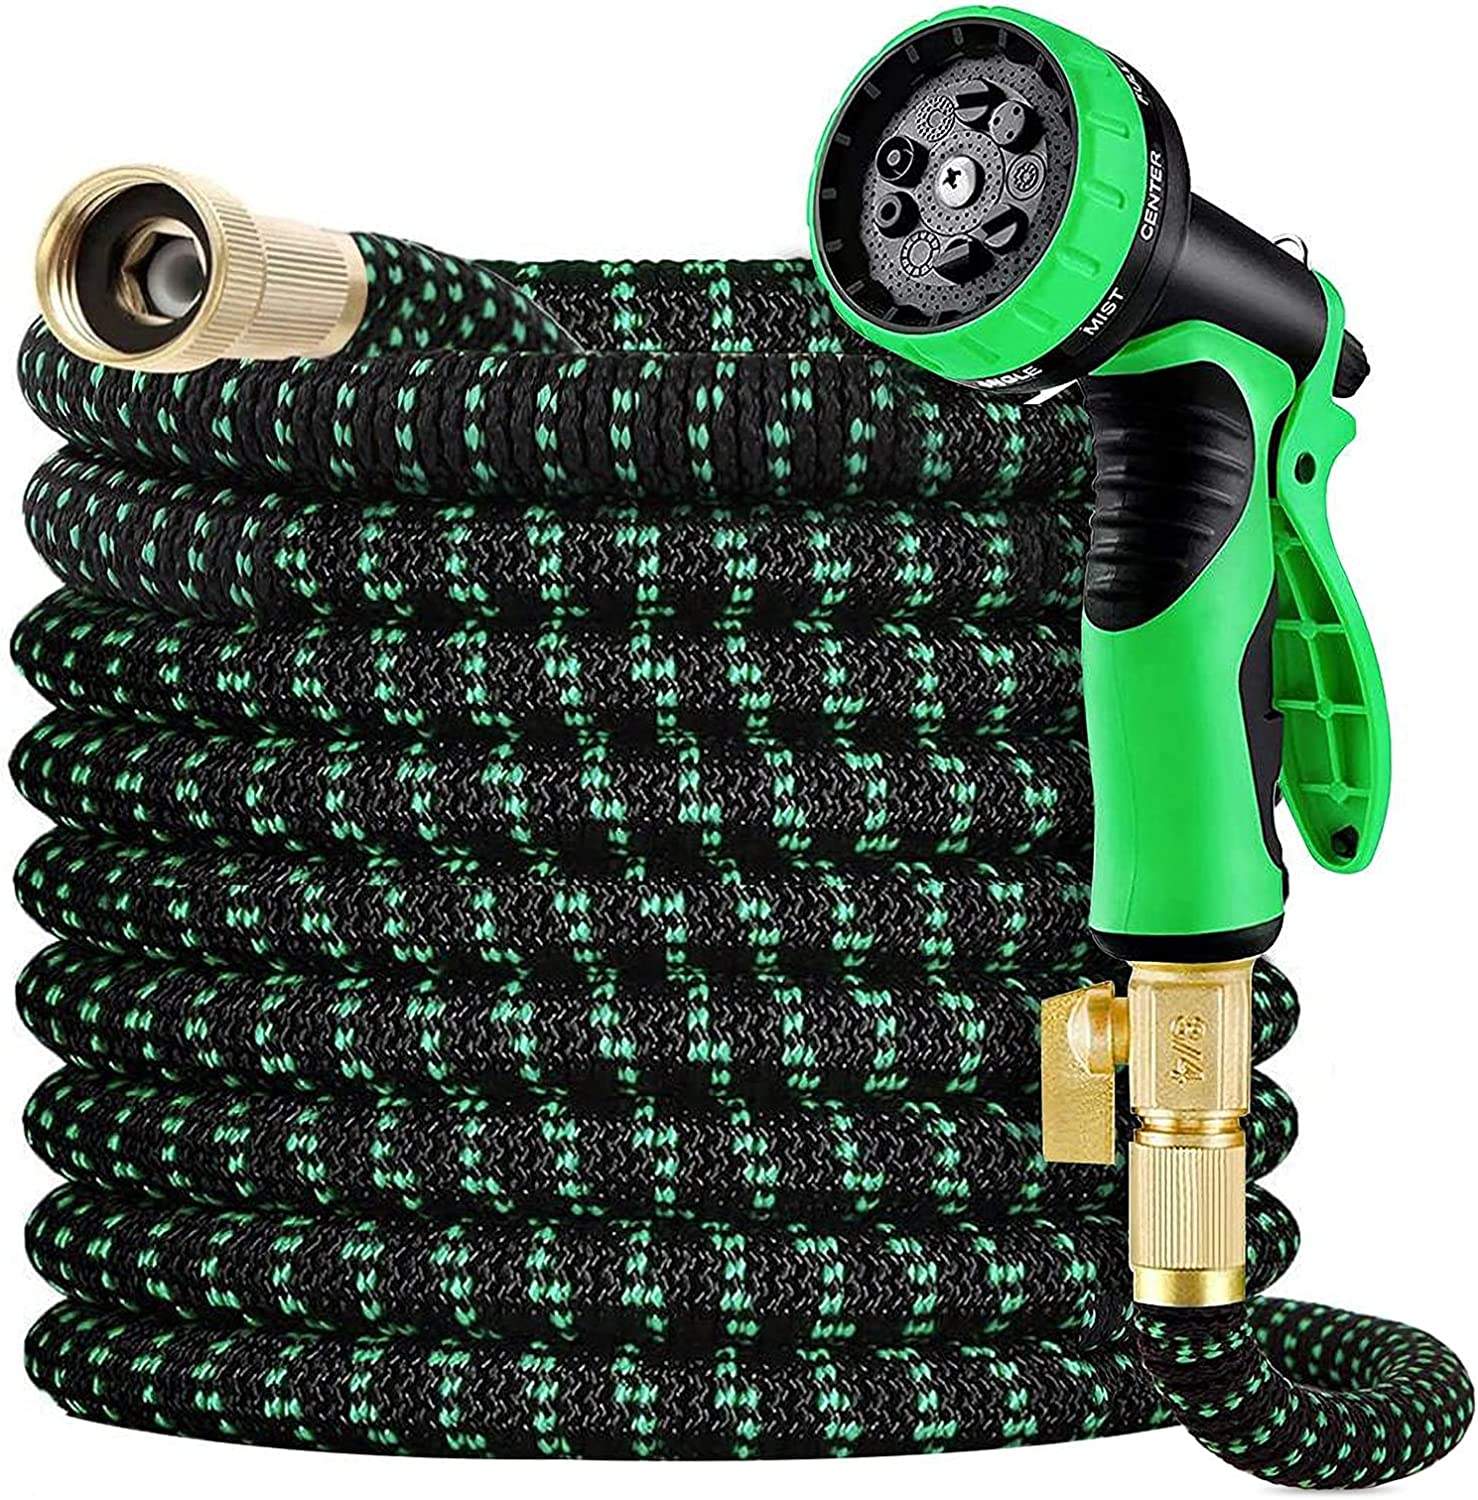 Haliluya Water Hose, Expandable Garden hose 100FT with 4-layer Latex, 3750D Polyester Fabric, 9 Function Nozzle and Durable Connectors - No Kink Flexible Garden Hose for Yard Watering Washing